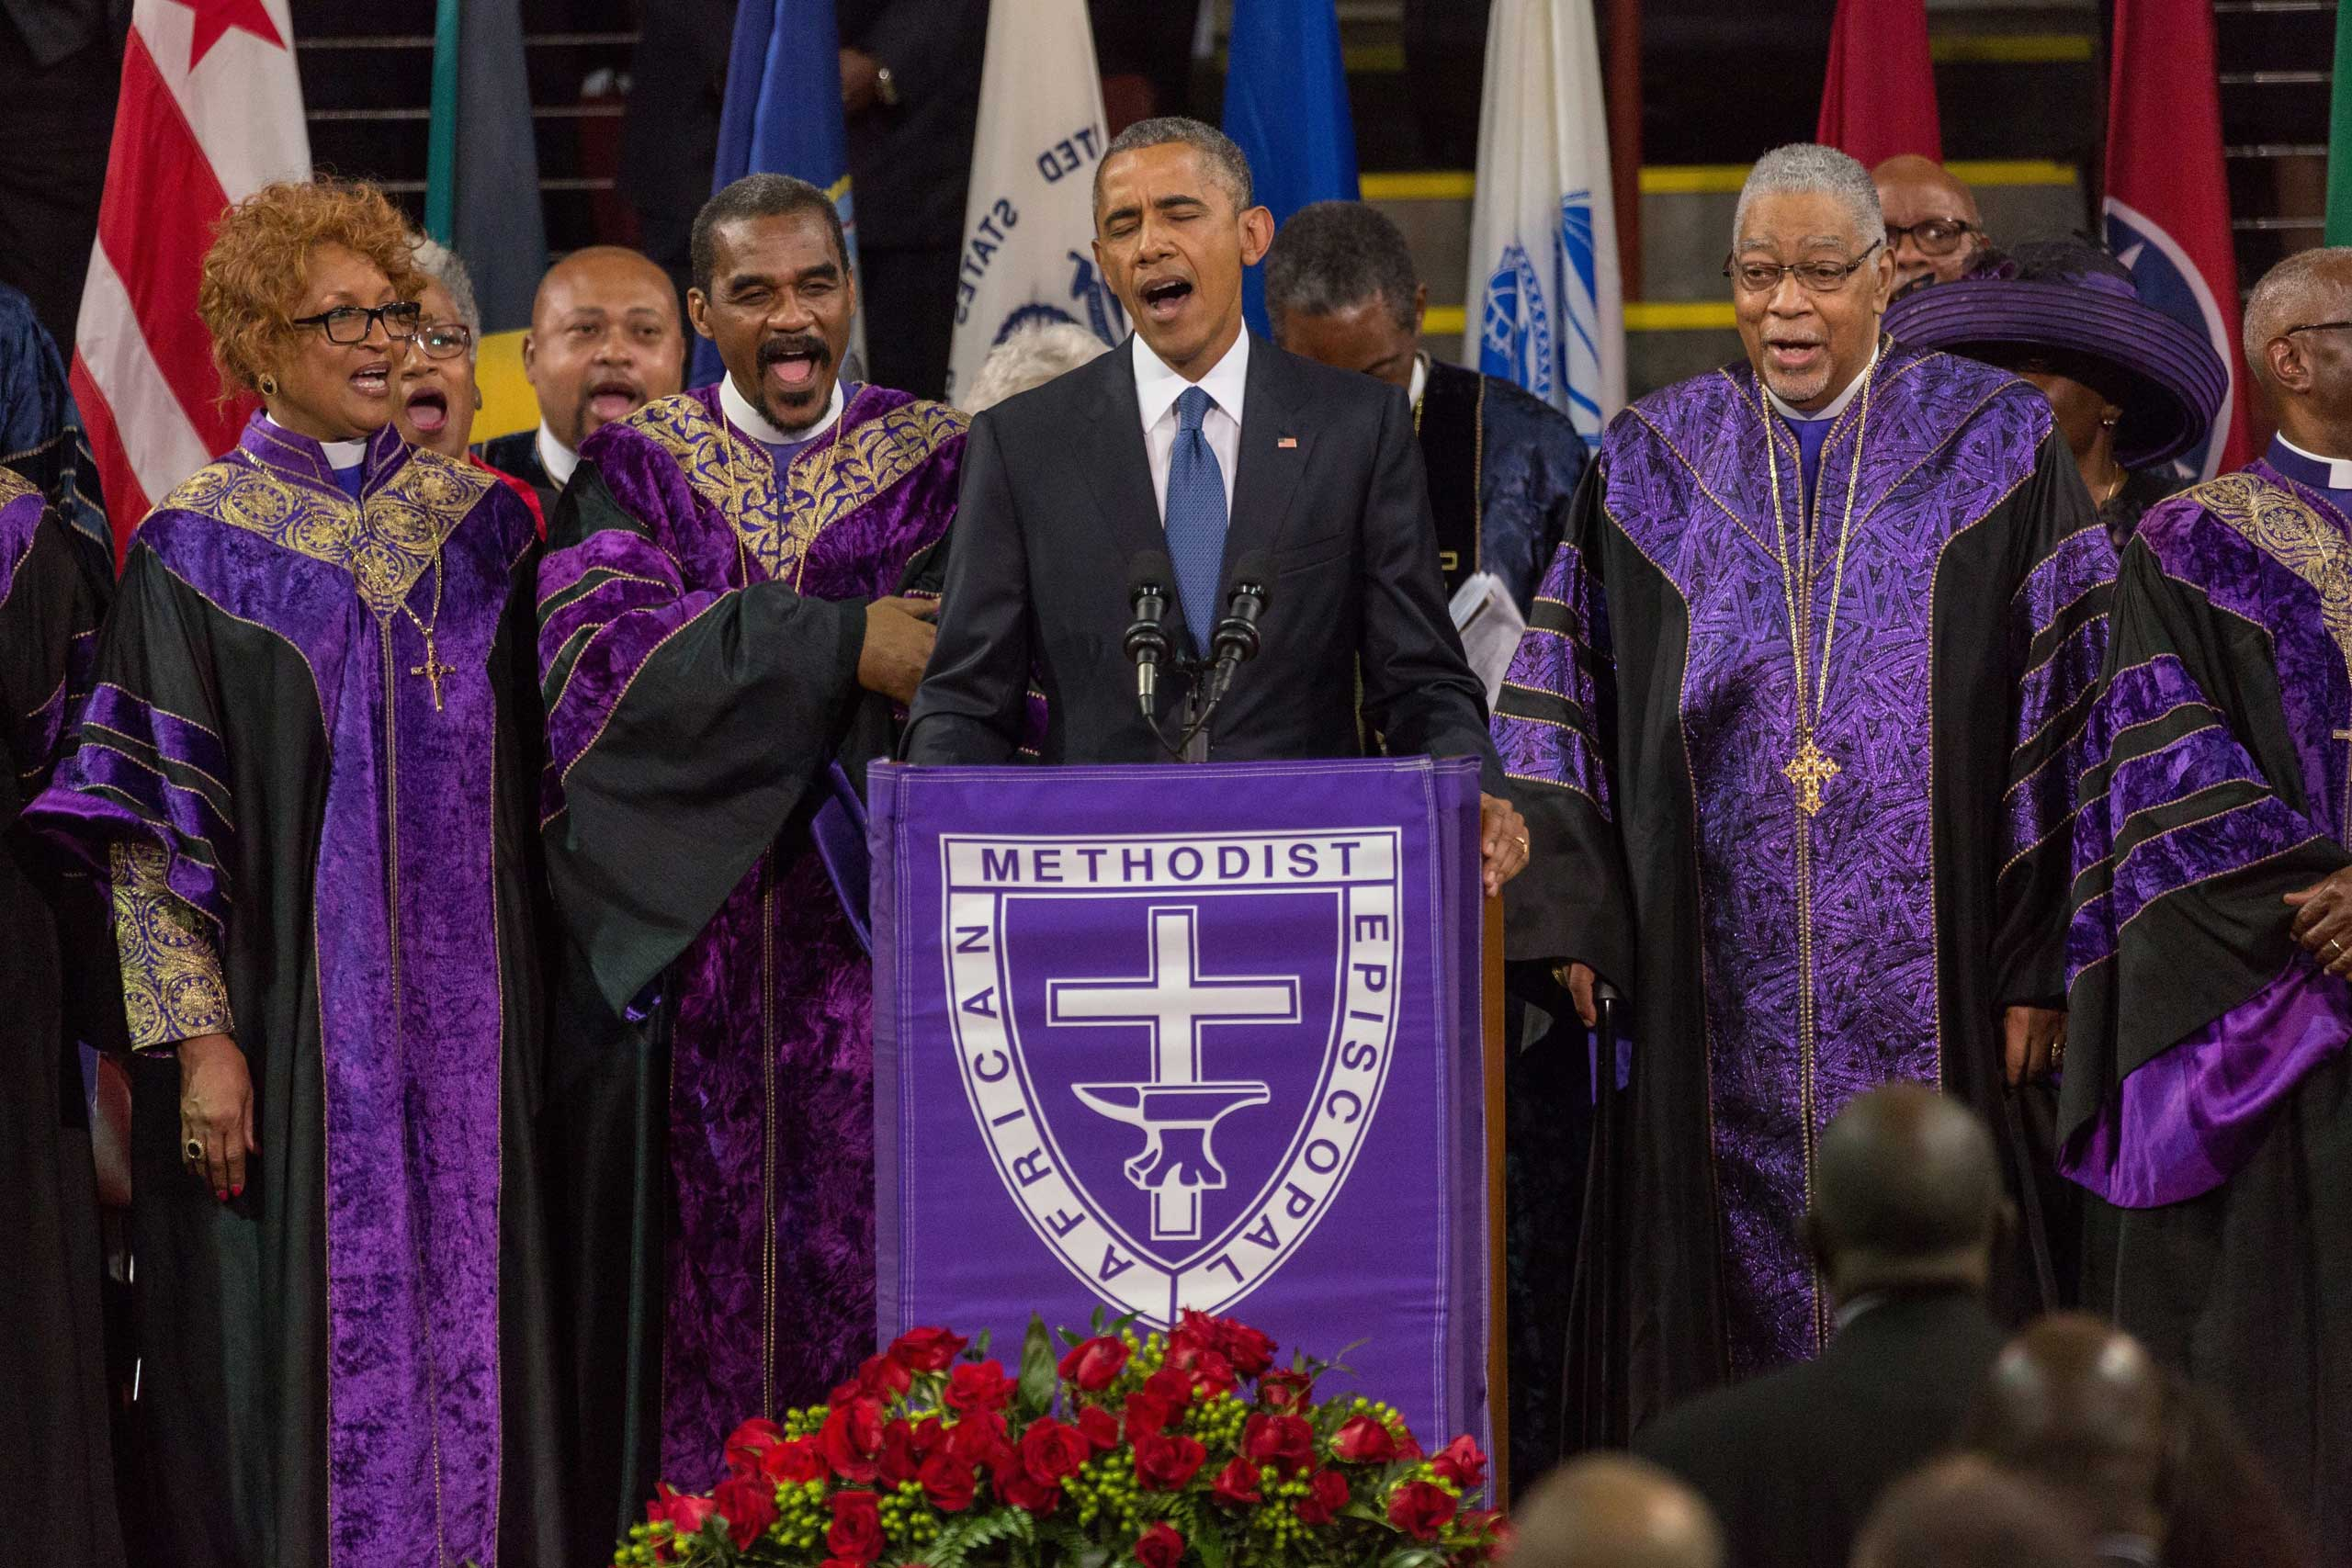 President Barack Obama sings Amazing Grace during the eulogy at the funeral of Rev. Clementa Pinckney at the TD Arena in Charleston, S.C. on June 26, 2015.